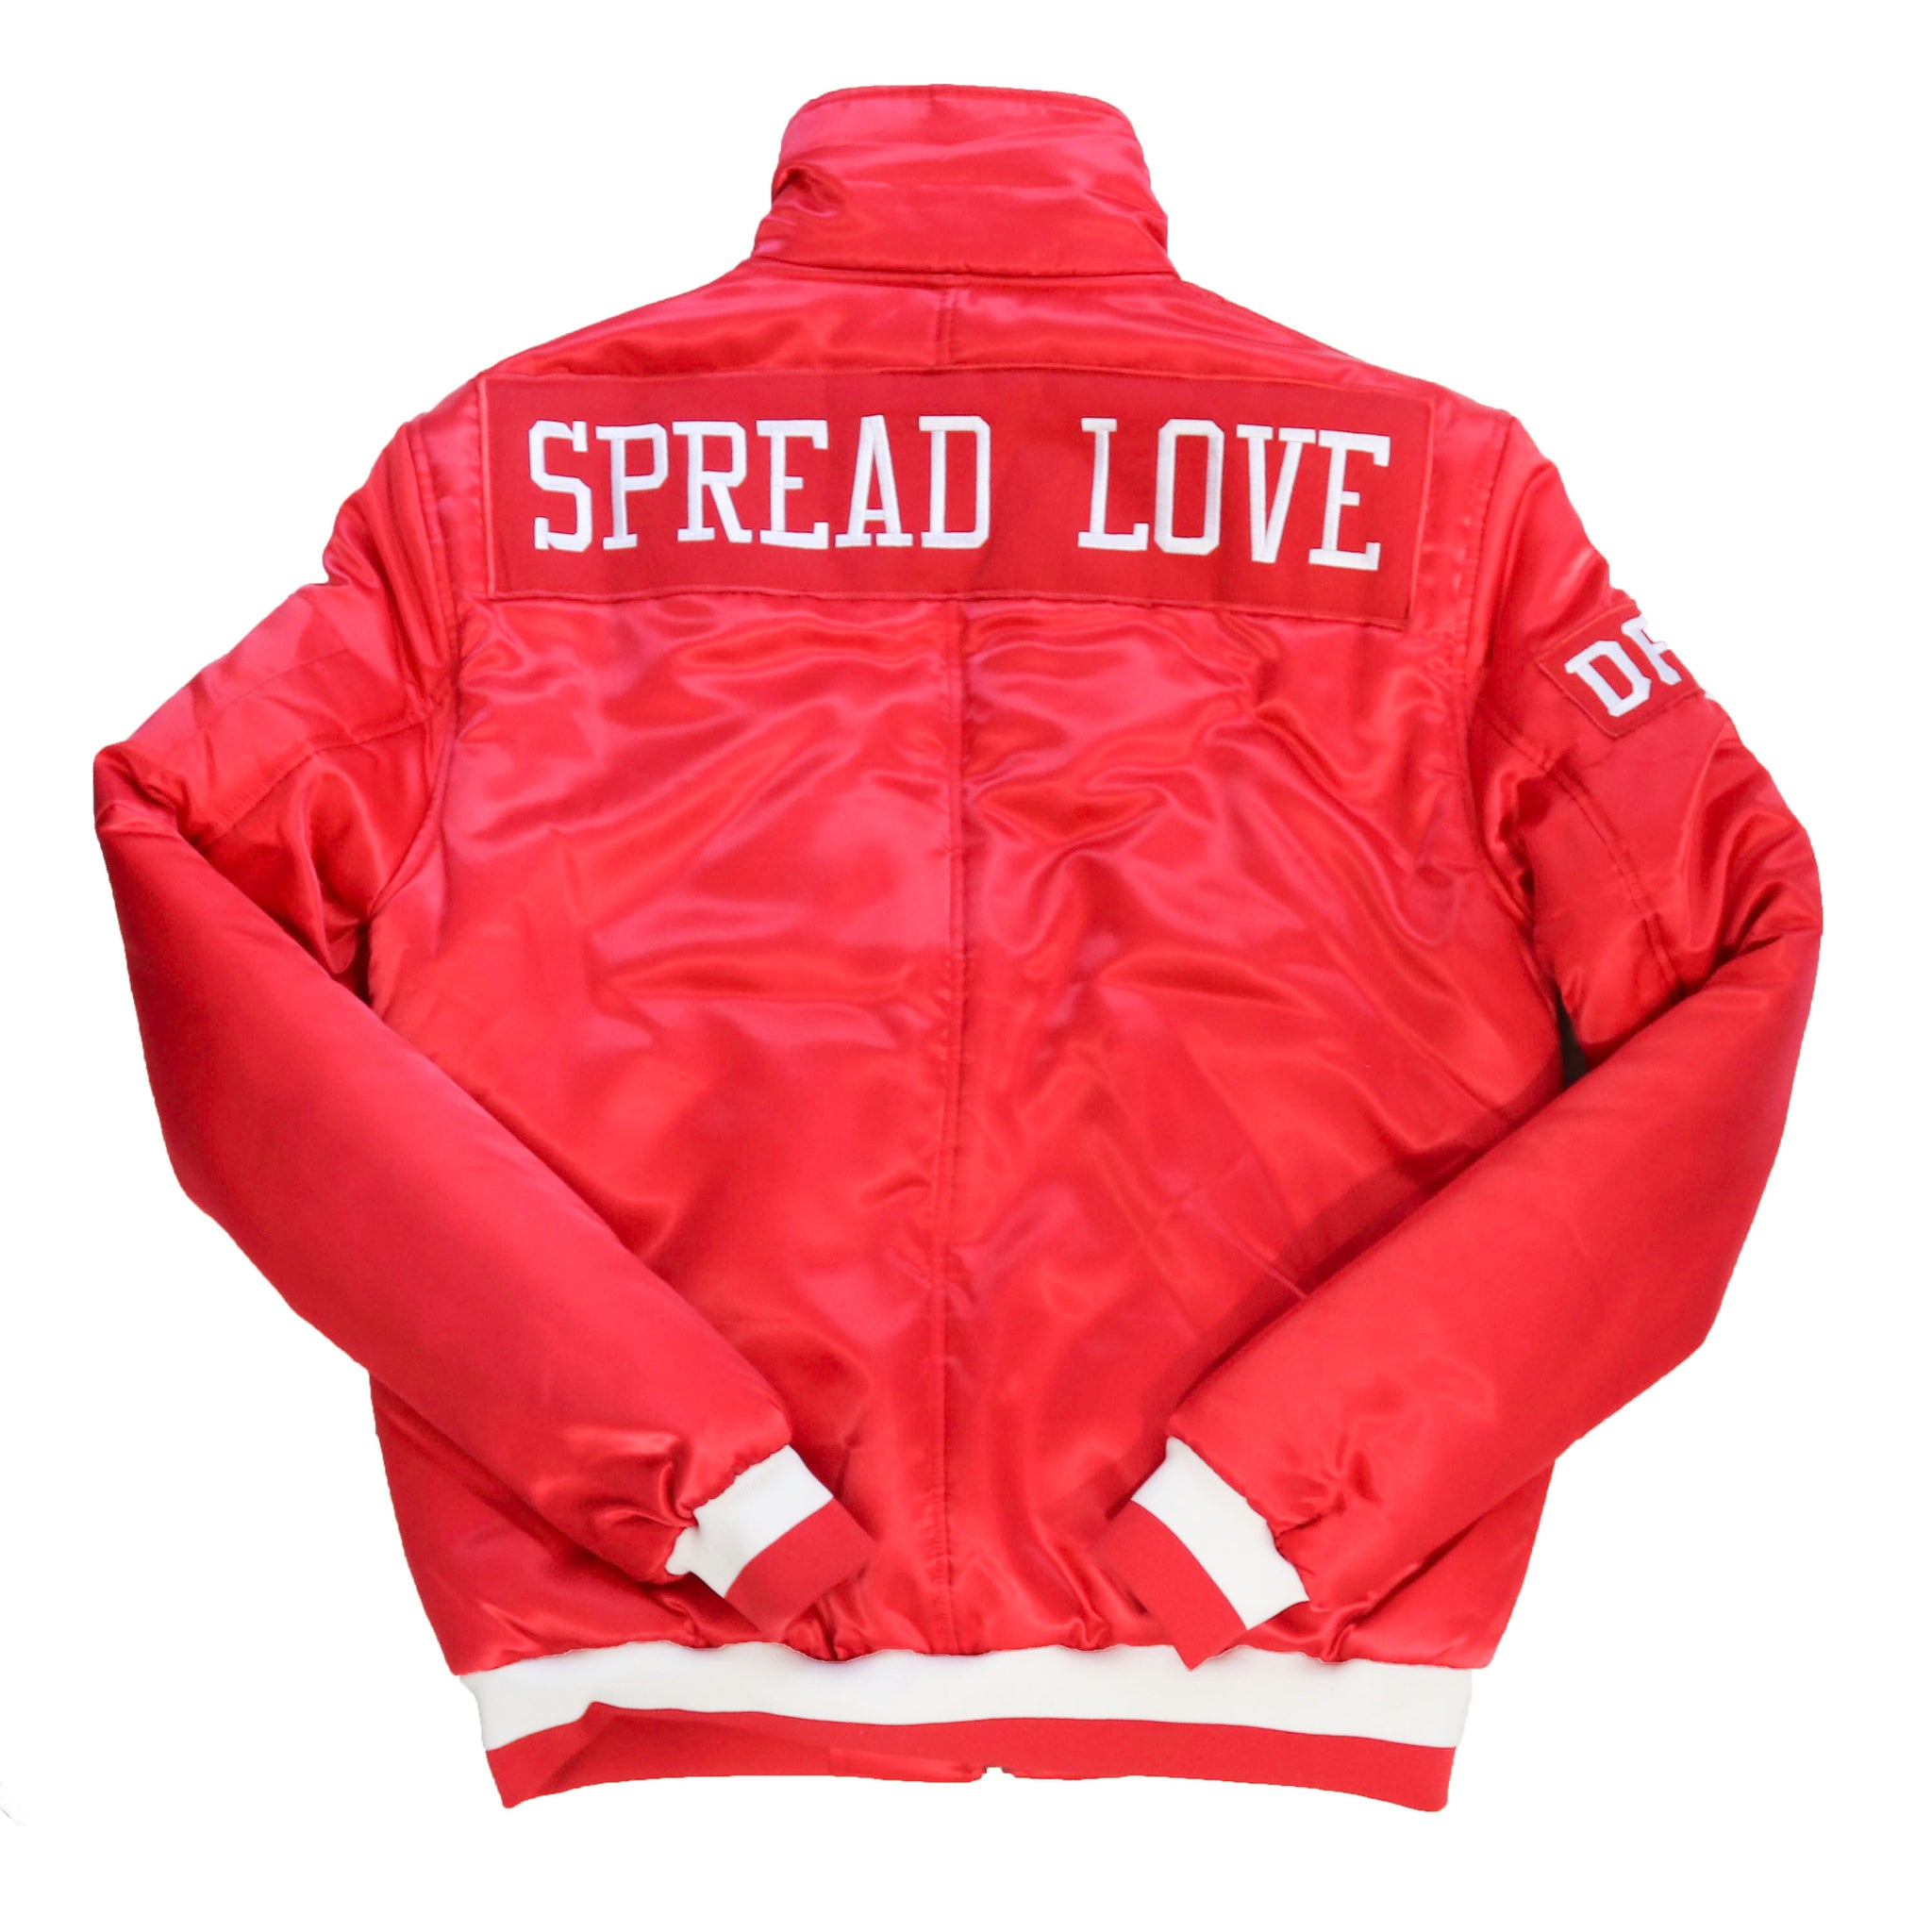 Spread Love Bomber Jacket - Red/ Black